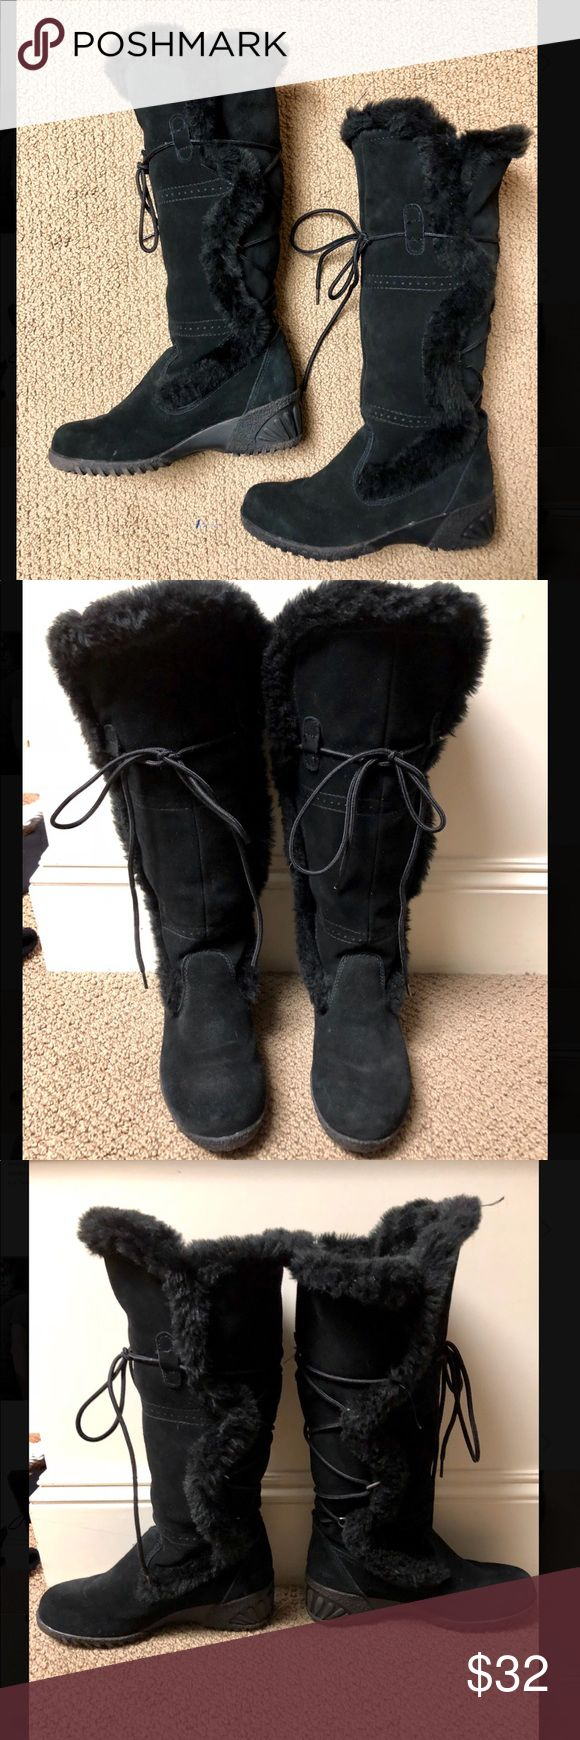 Awesome leather Sporto boots. Sz 6 Awesome leather Sporto boots. Sz 6 In Great Condition! Sporto Shoes Winter & Rain Boots